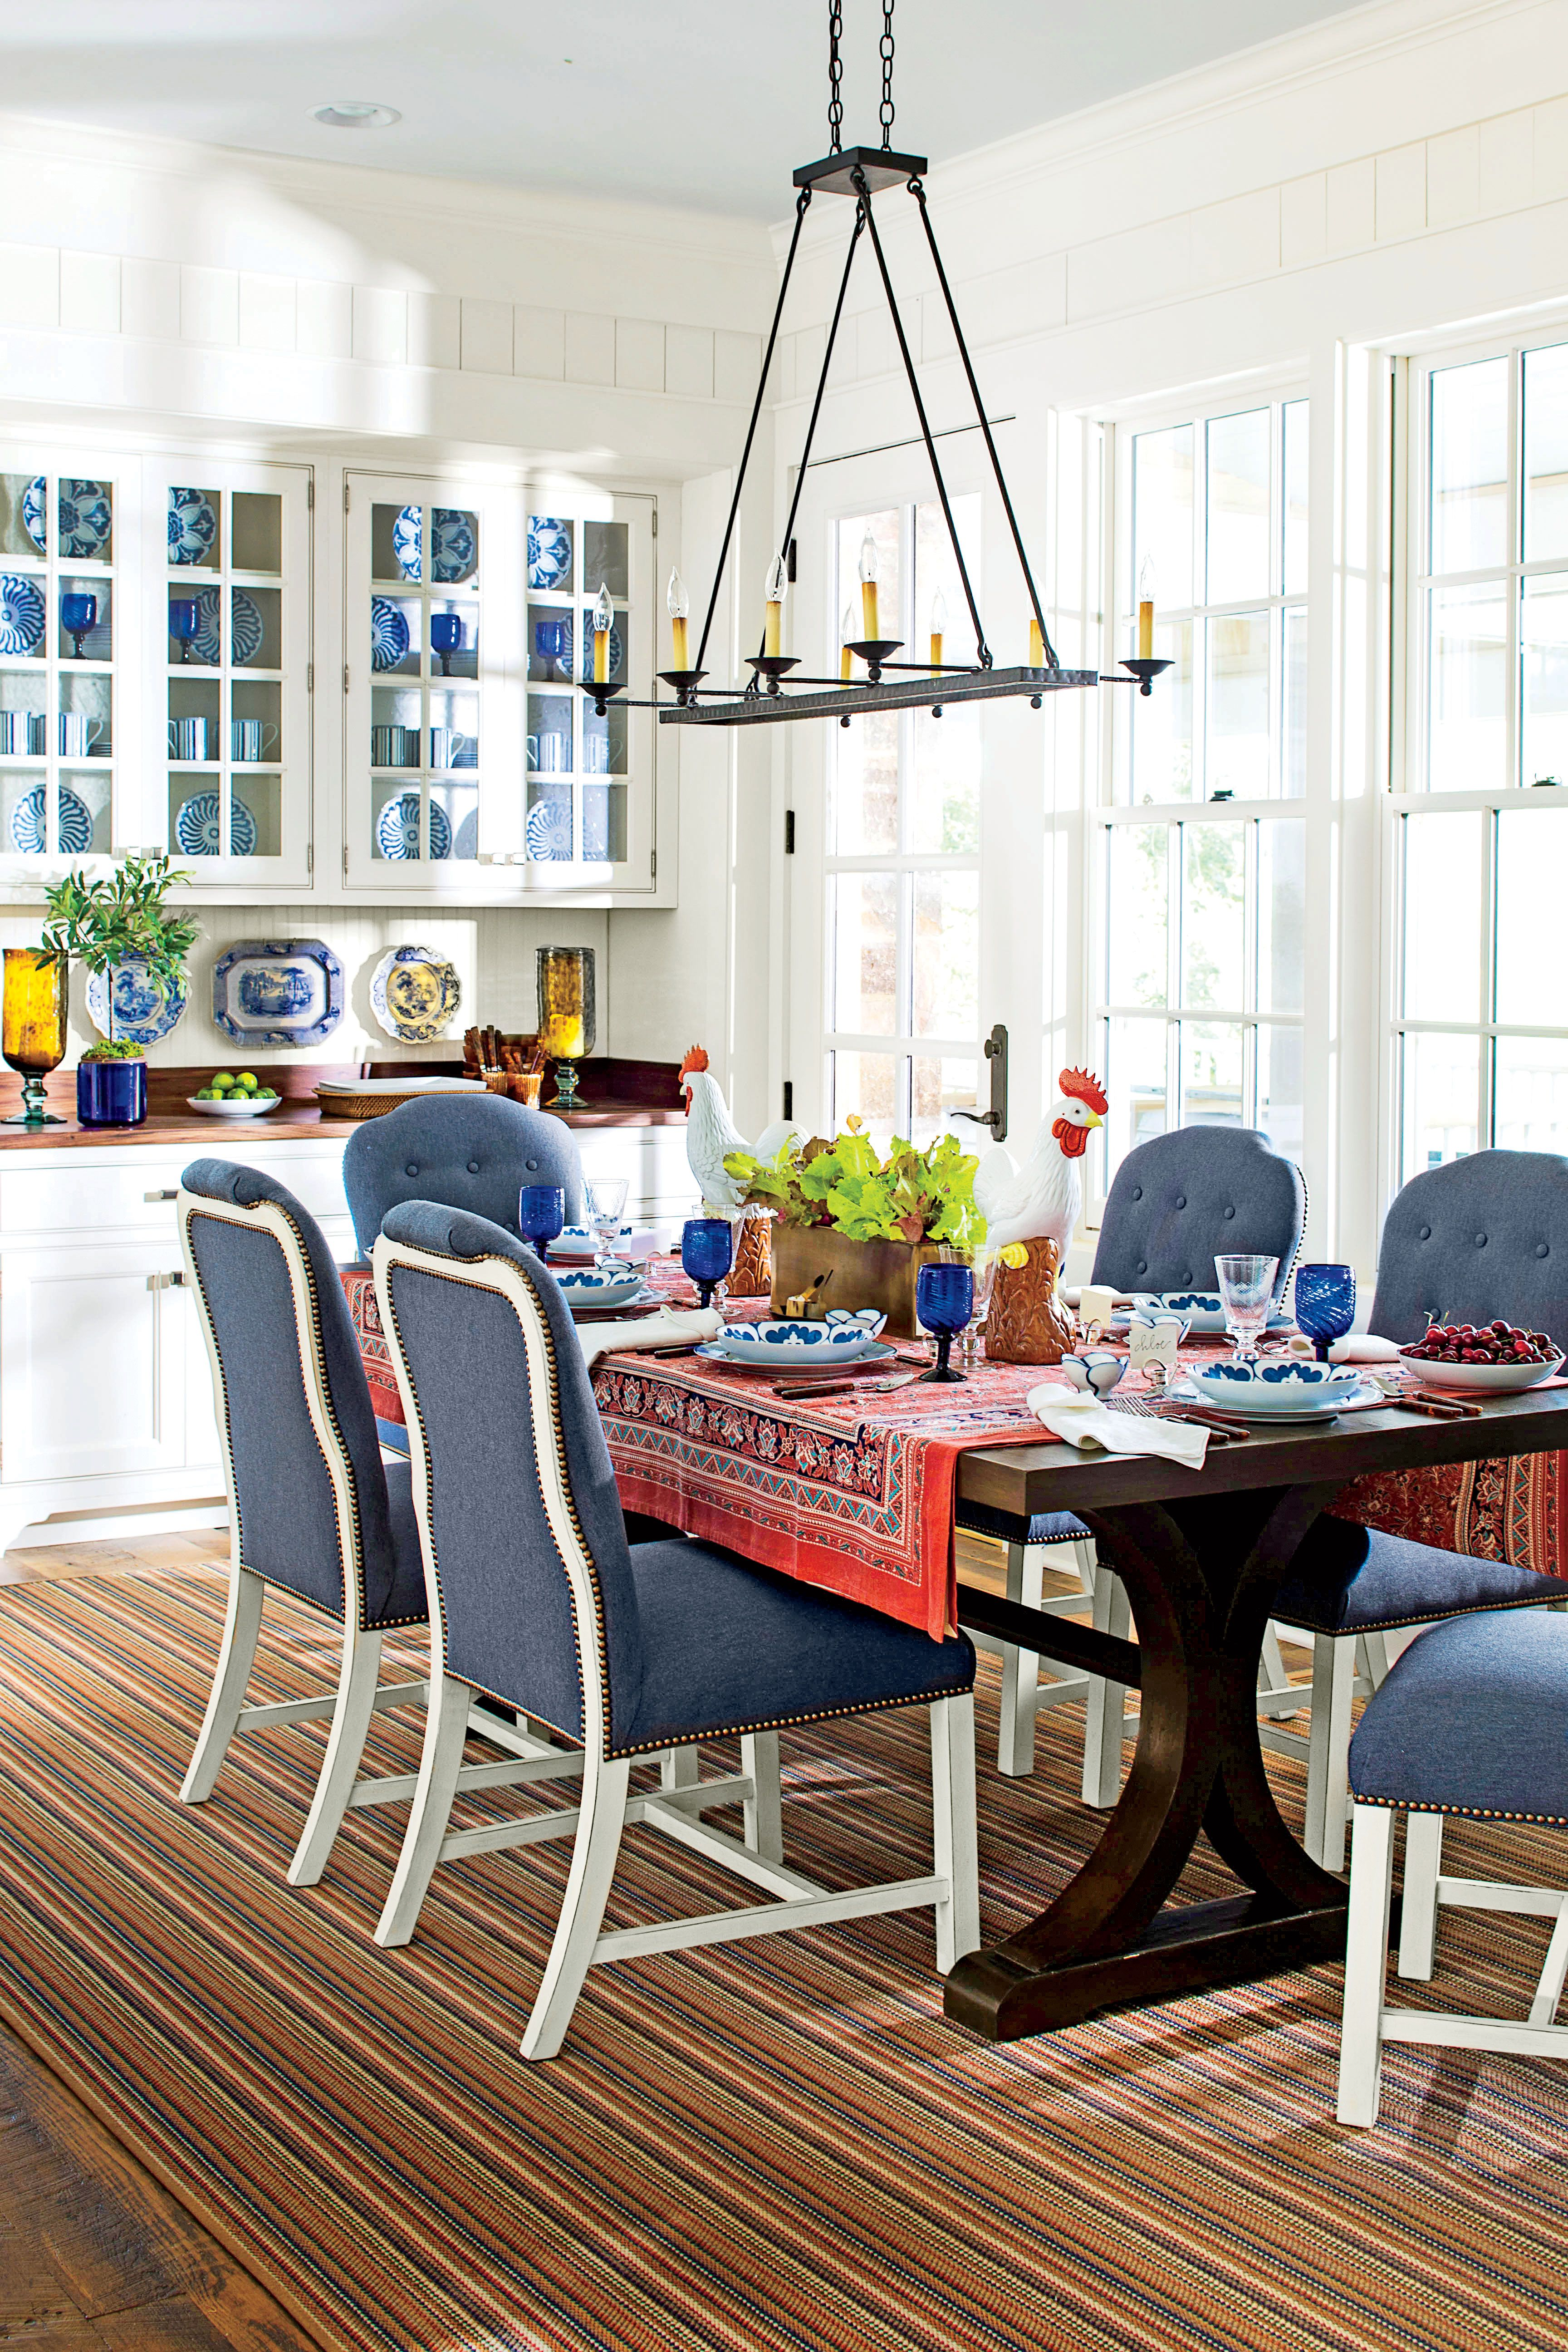 Tour the 2015 Idea House | Southern living homes, Home ...